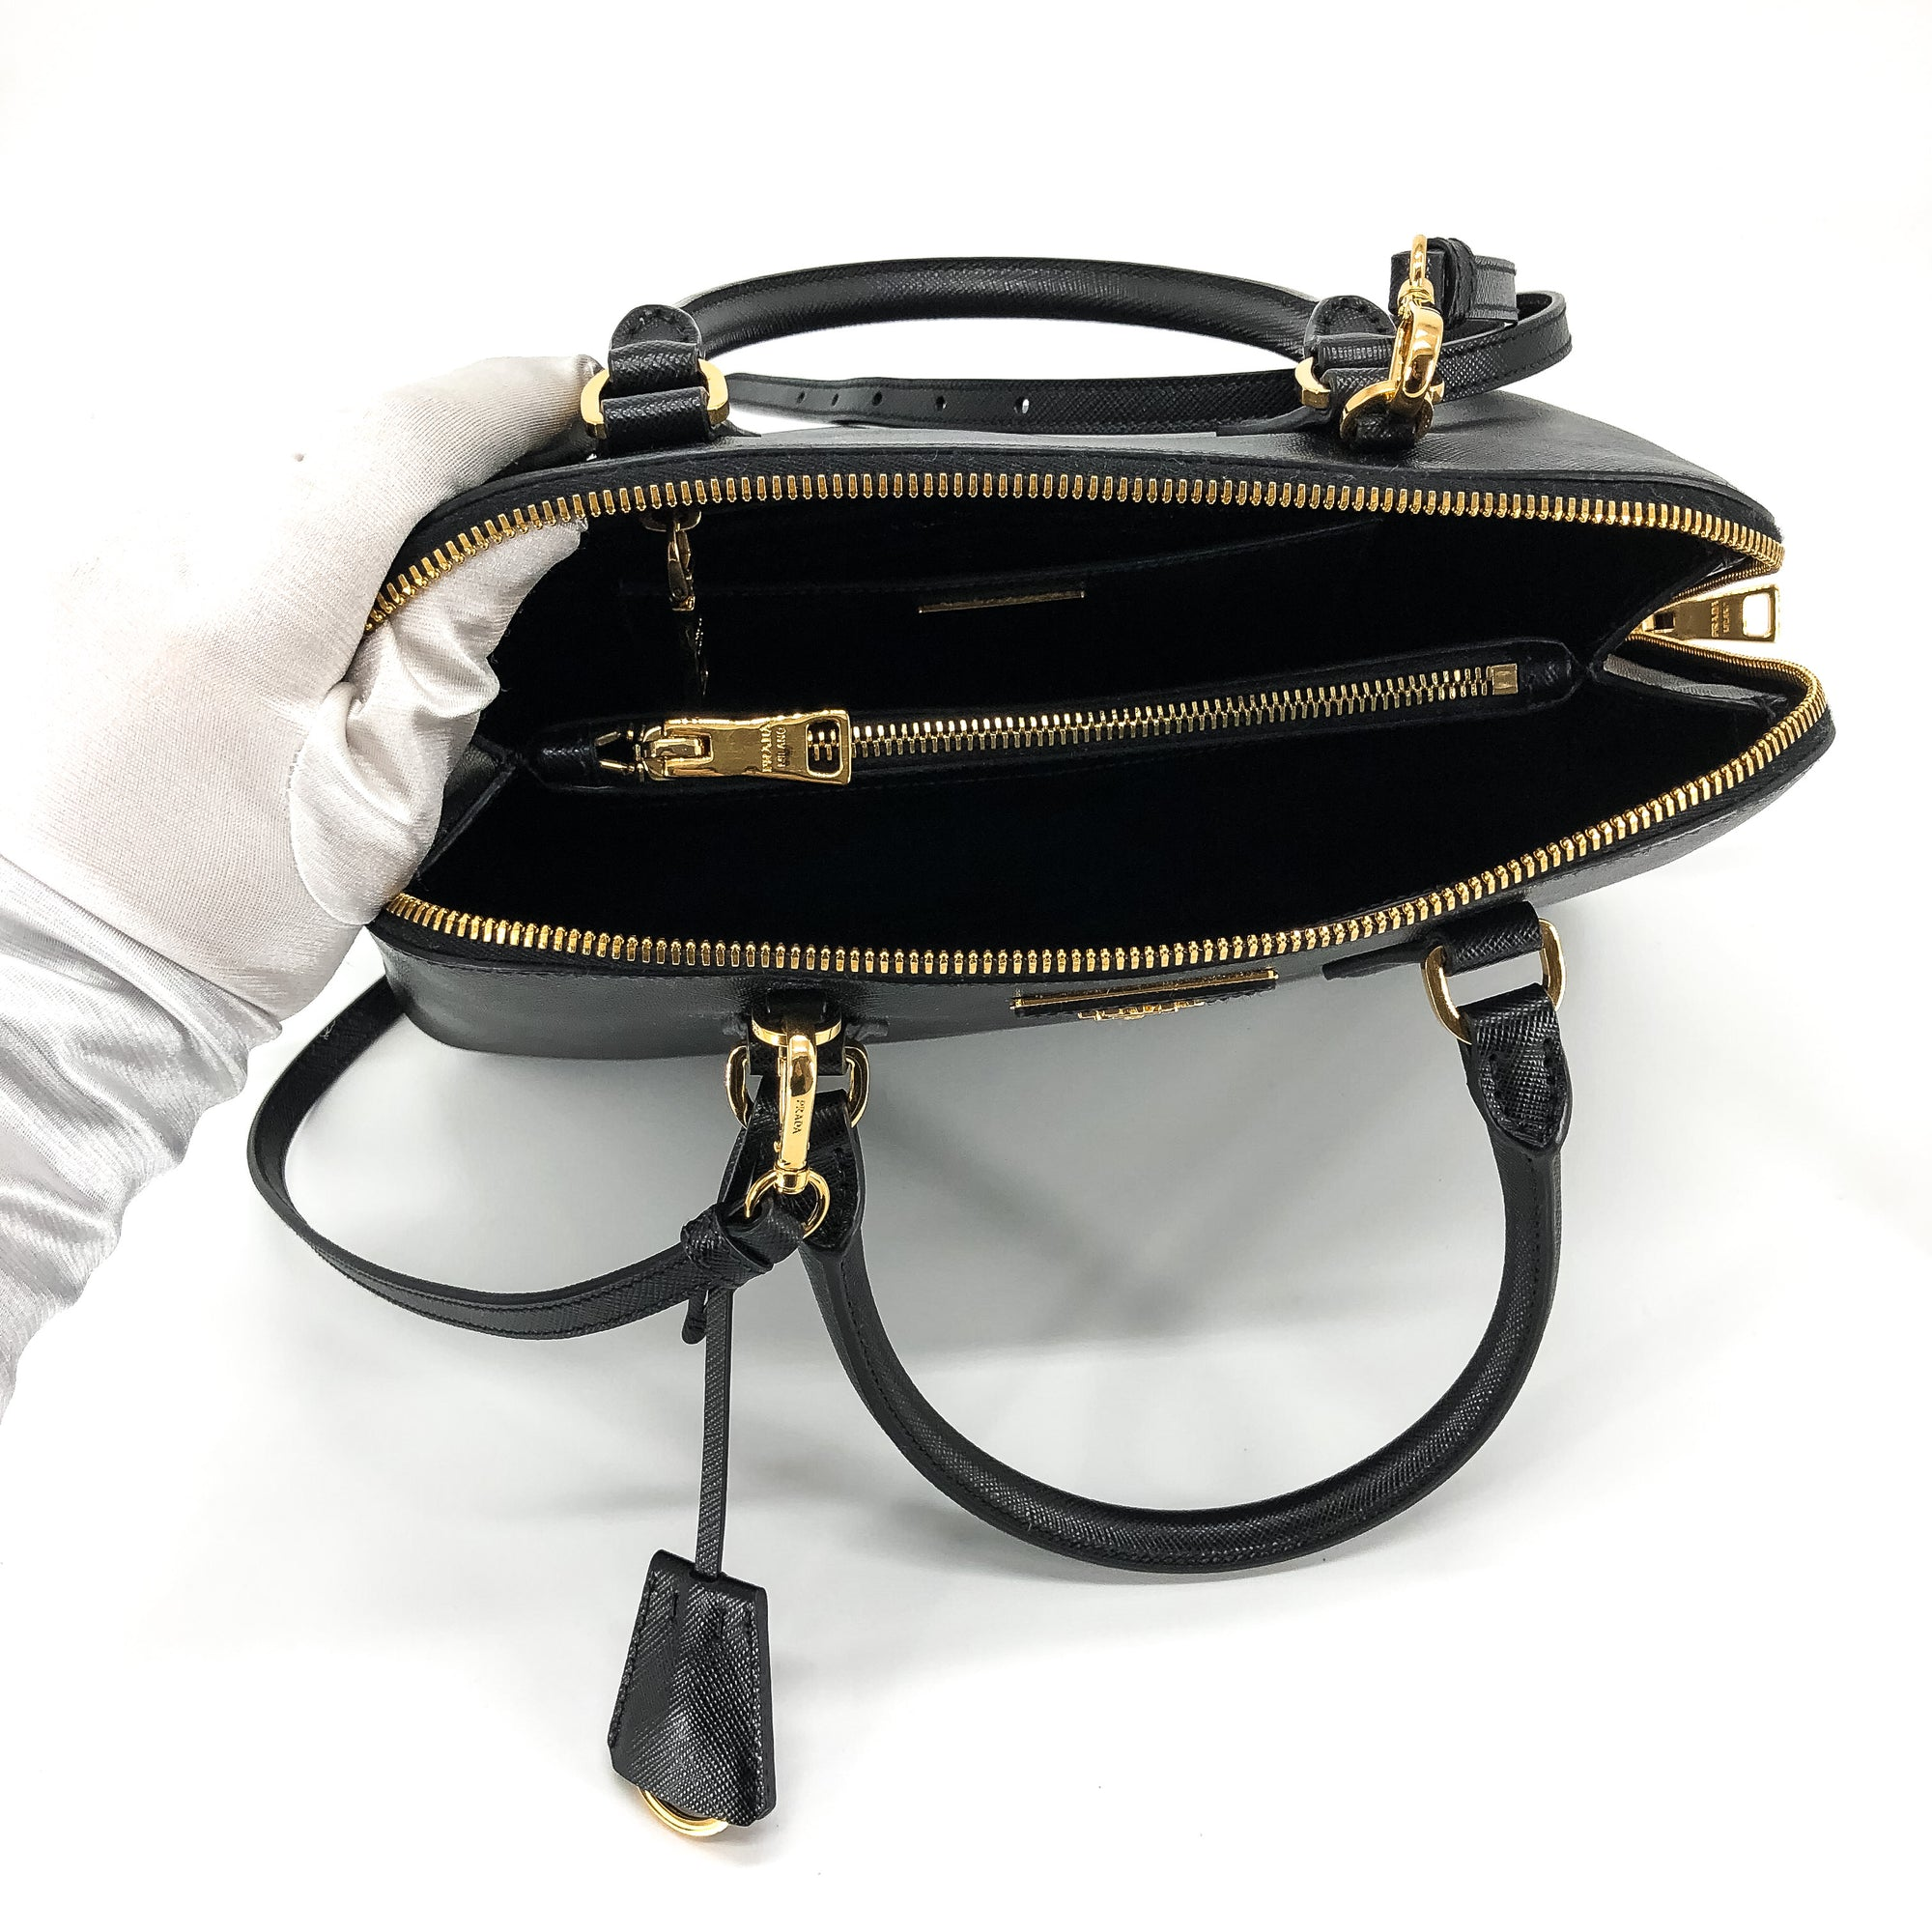 a20e0eacb0f3c1 Prada Saffiano Lux Promenade Top Handle Cross Body Bag - THE PURSE ...